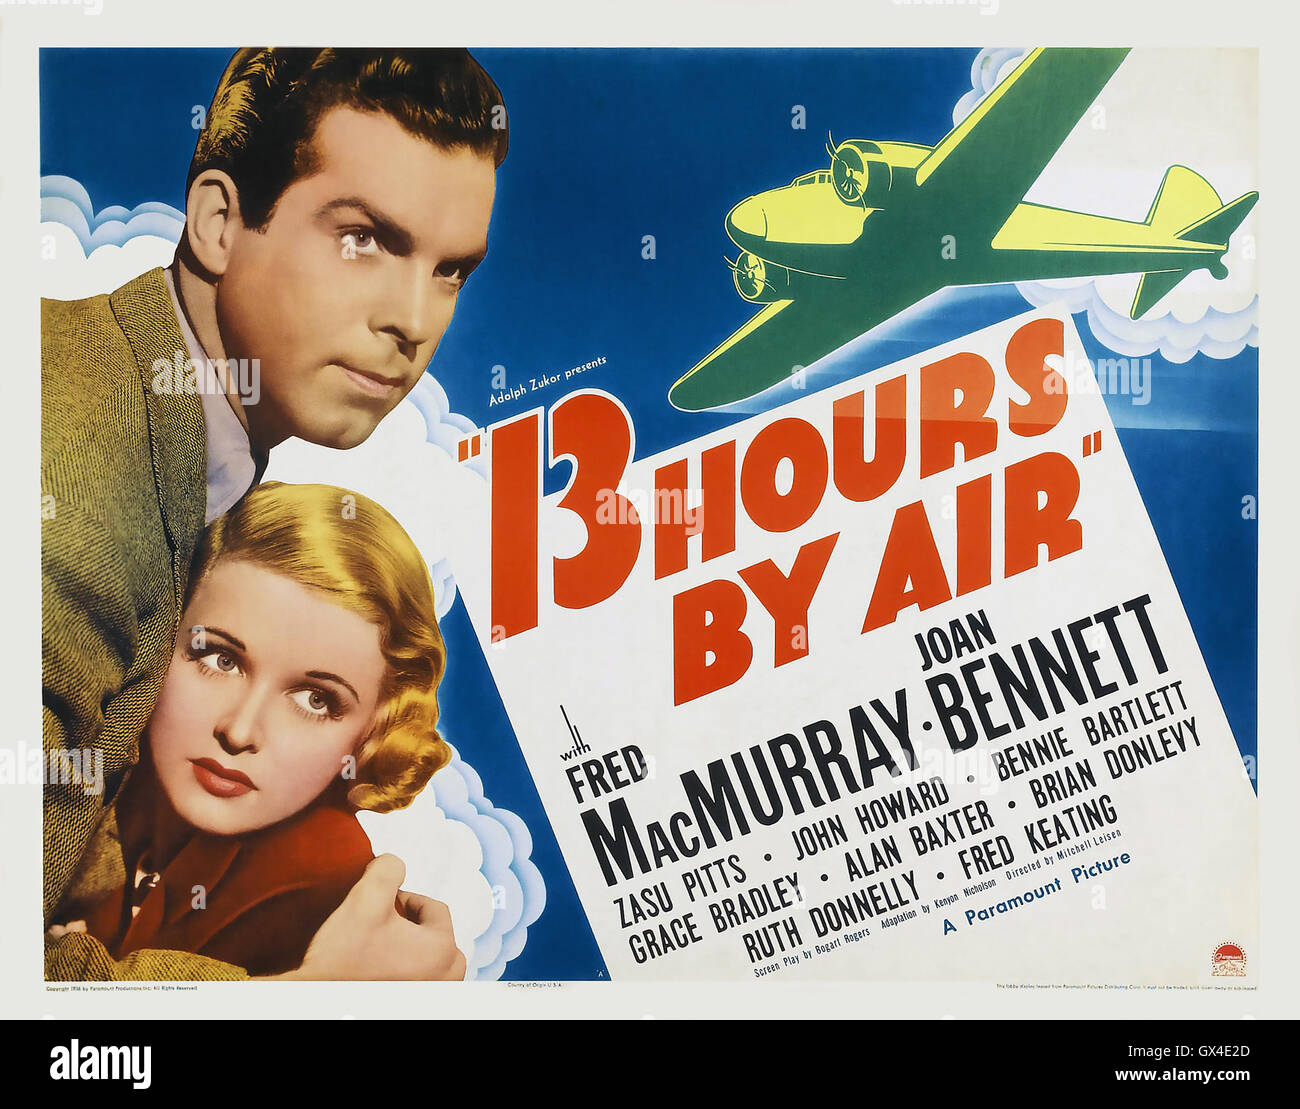 13 HOURS BY AIR 1936 Paramount Pictures film with Joan Bennett and Fred MacMurray - Stock Image